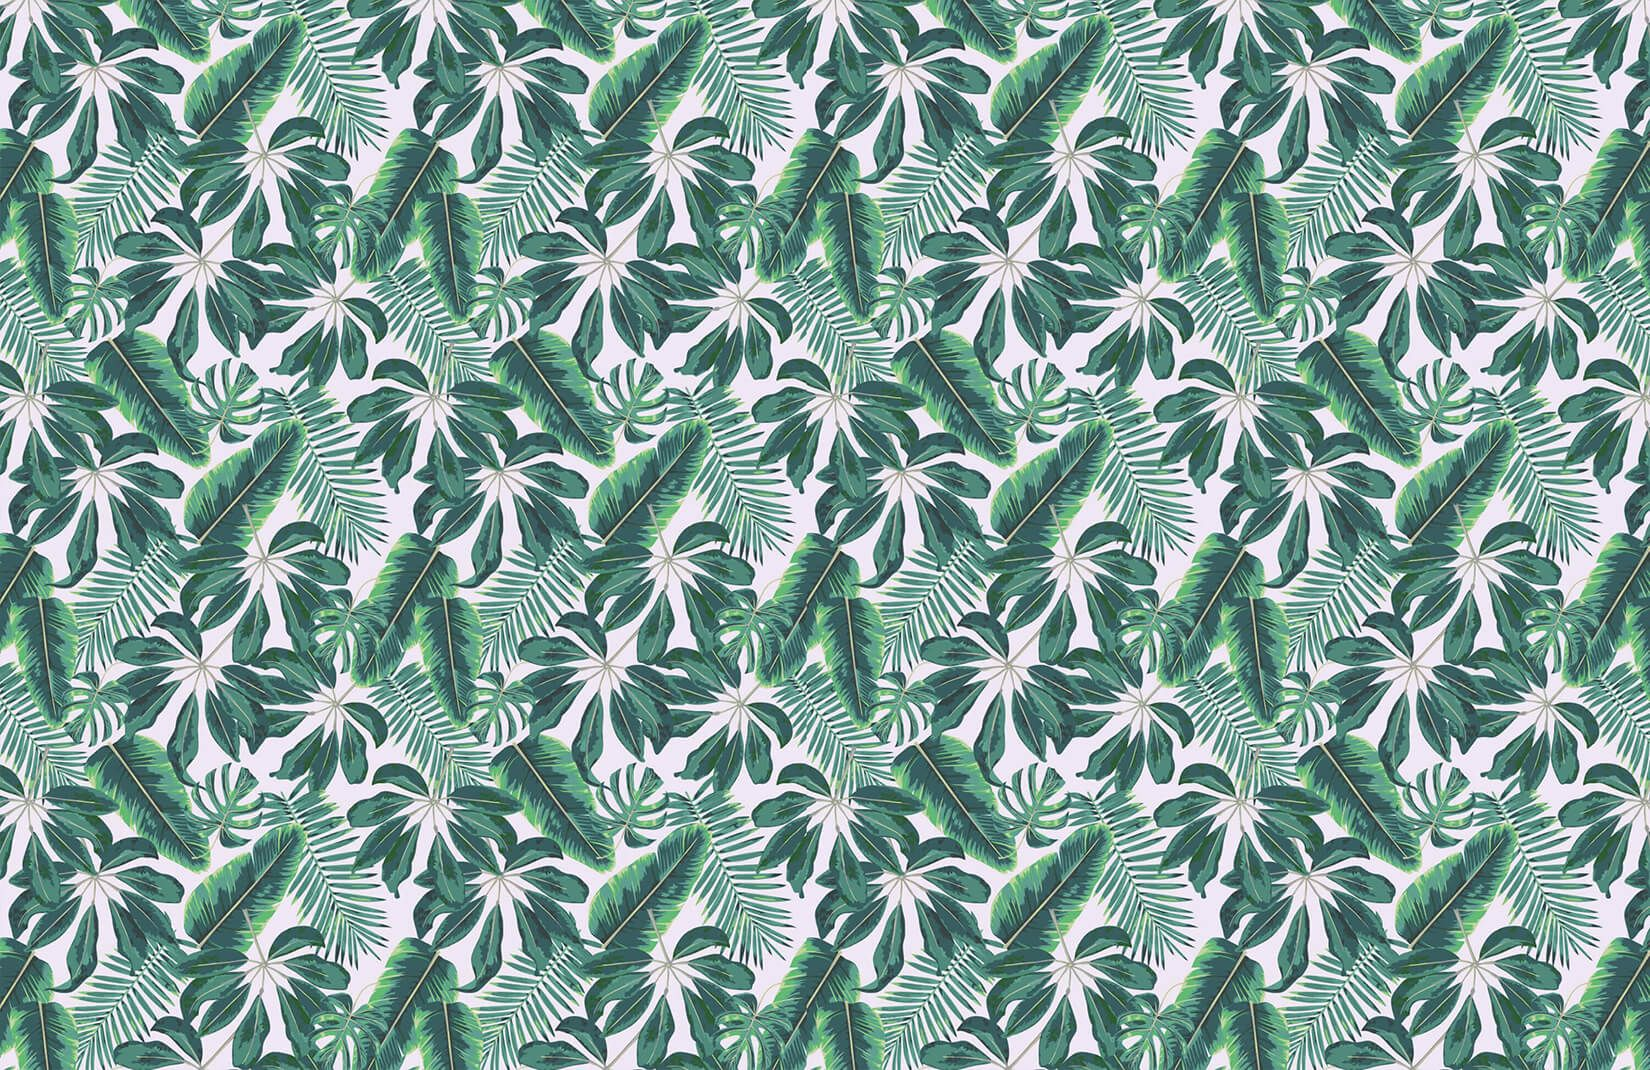 1650x1070 Mixed Tropical Leaves Wallpaper | Cool Tropical Leaf ...